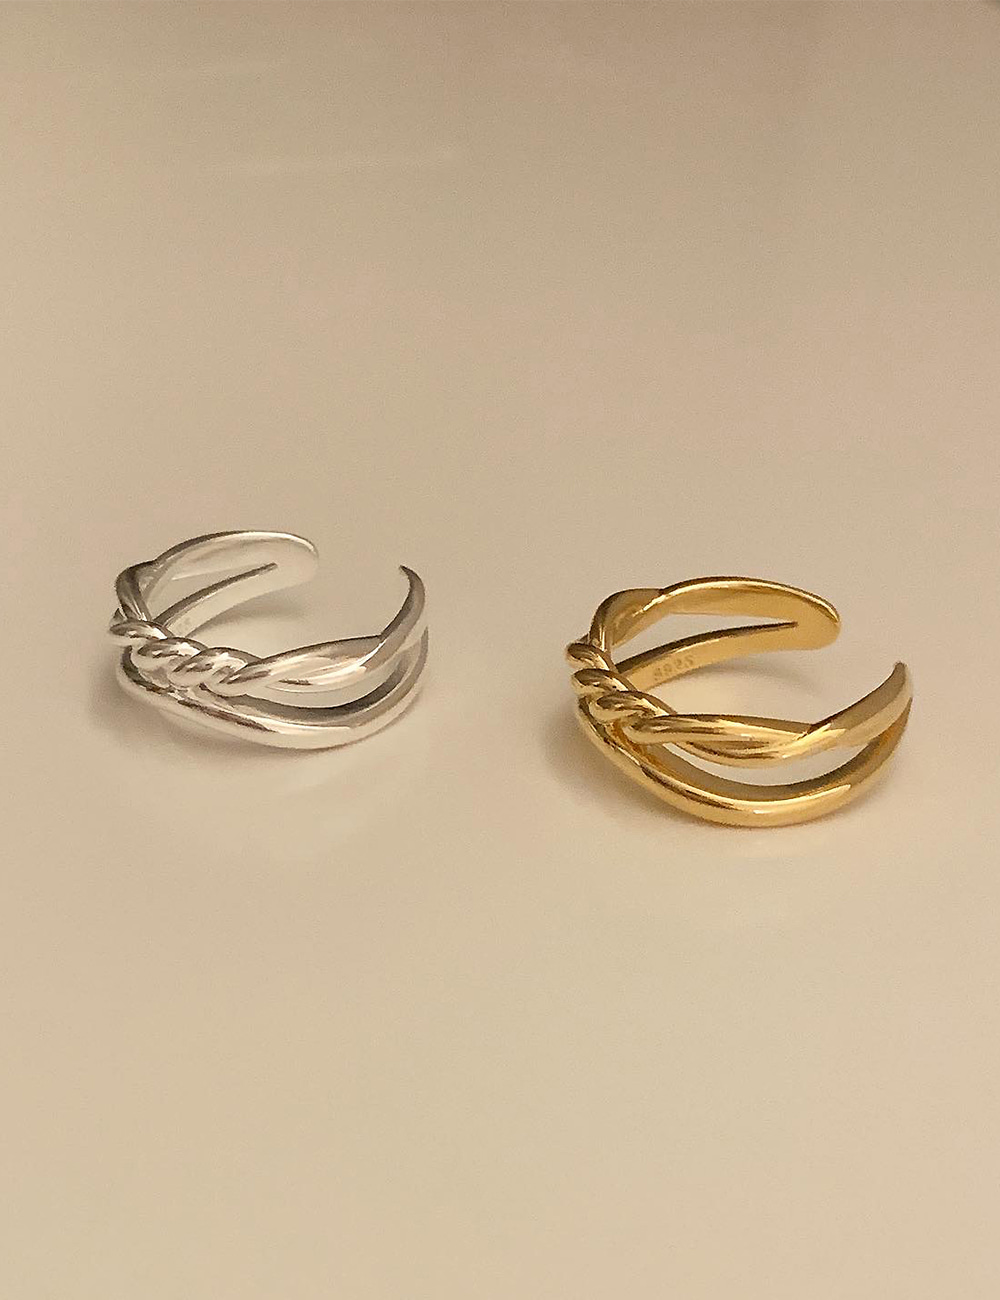 (silver 92.5) Mix ring